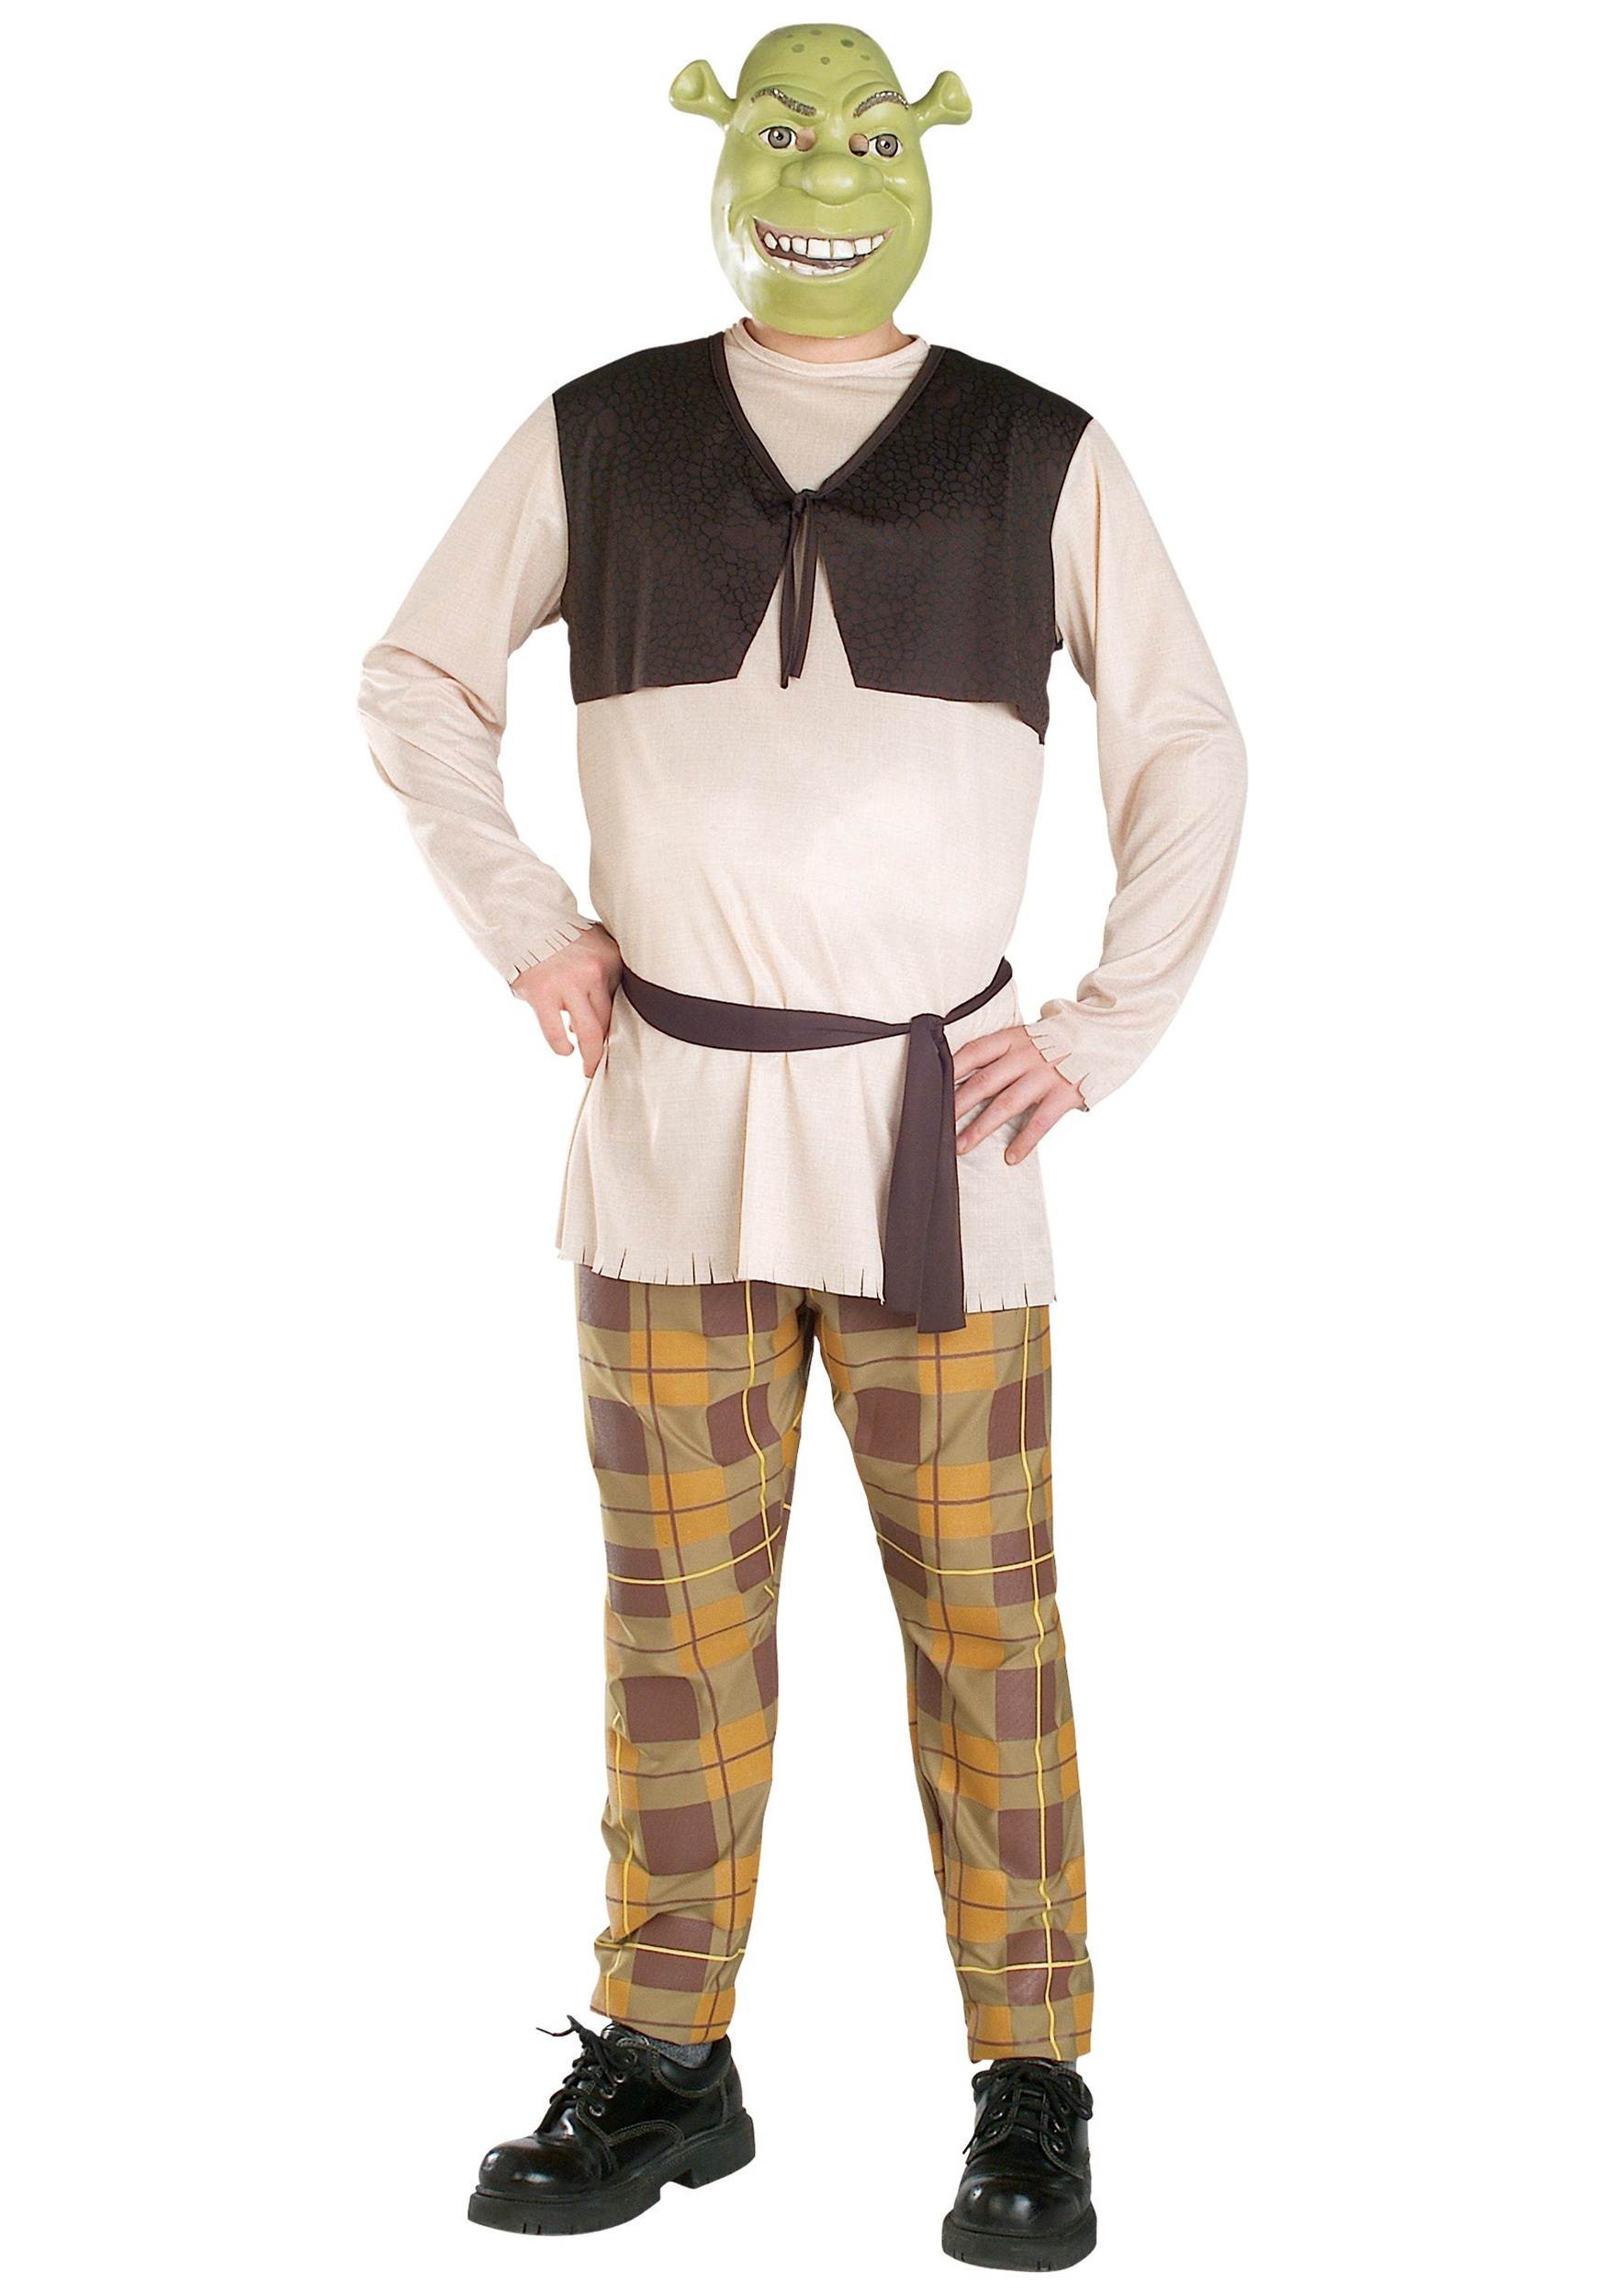 Plus Size Shrek Costume  sc 1 st  Halloween Costumes & Plus Size Shrek Costume - Halloween Costumes